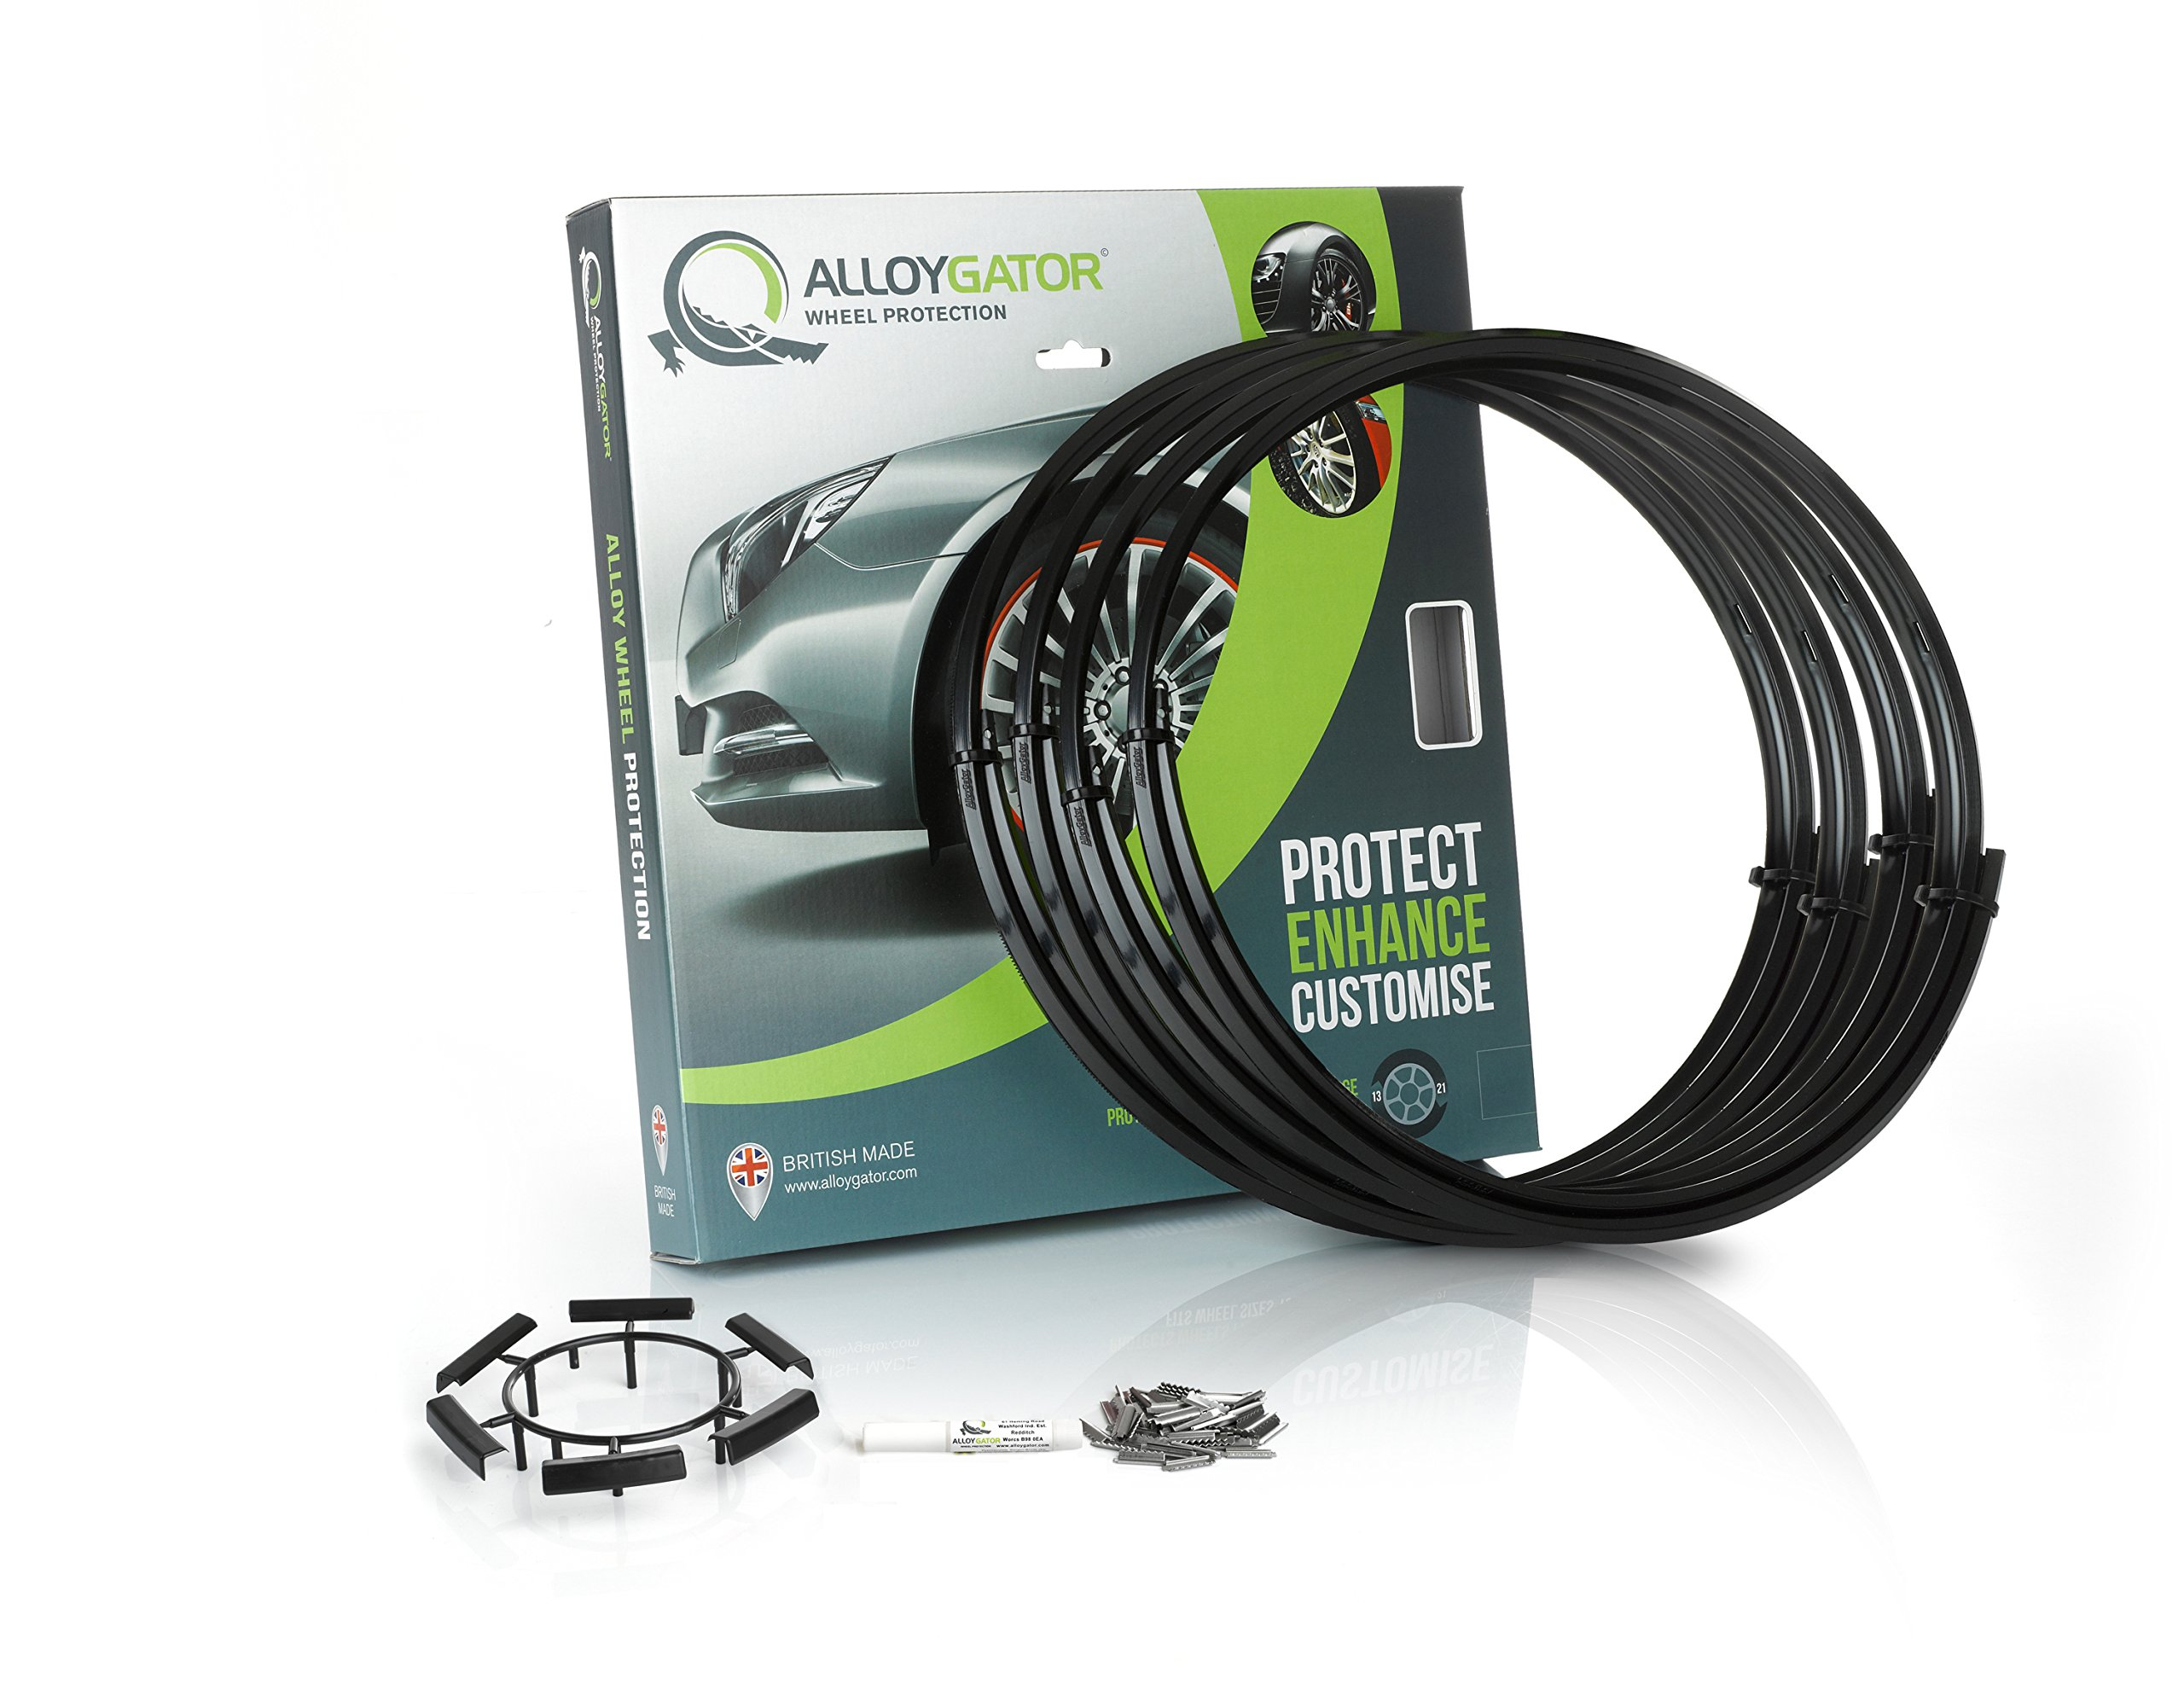 Alloygator Alloy Wheel Protection (MADE IN BRITAIN) Rim Protector Complete Set of 4 BLACK COLOR Excellent Fitment (FITS 13'' to 21'' OEM Factory Rims & Aftermarket Wheels)